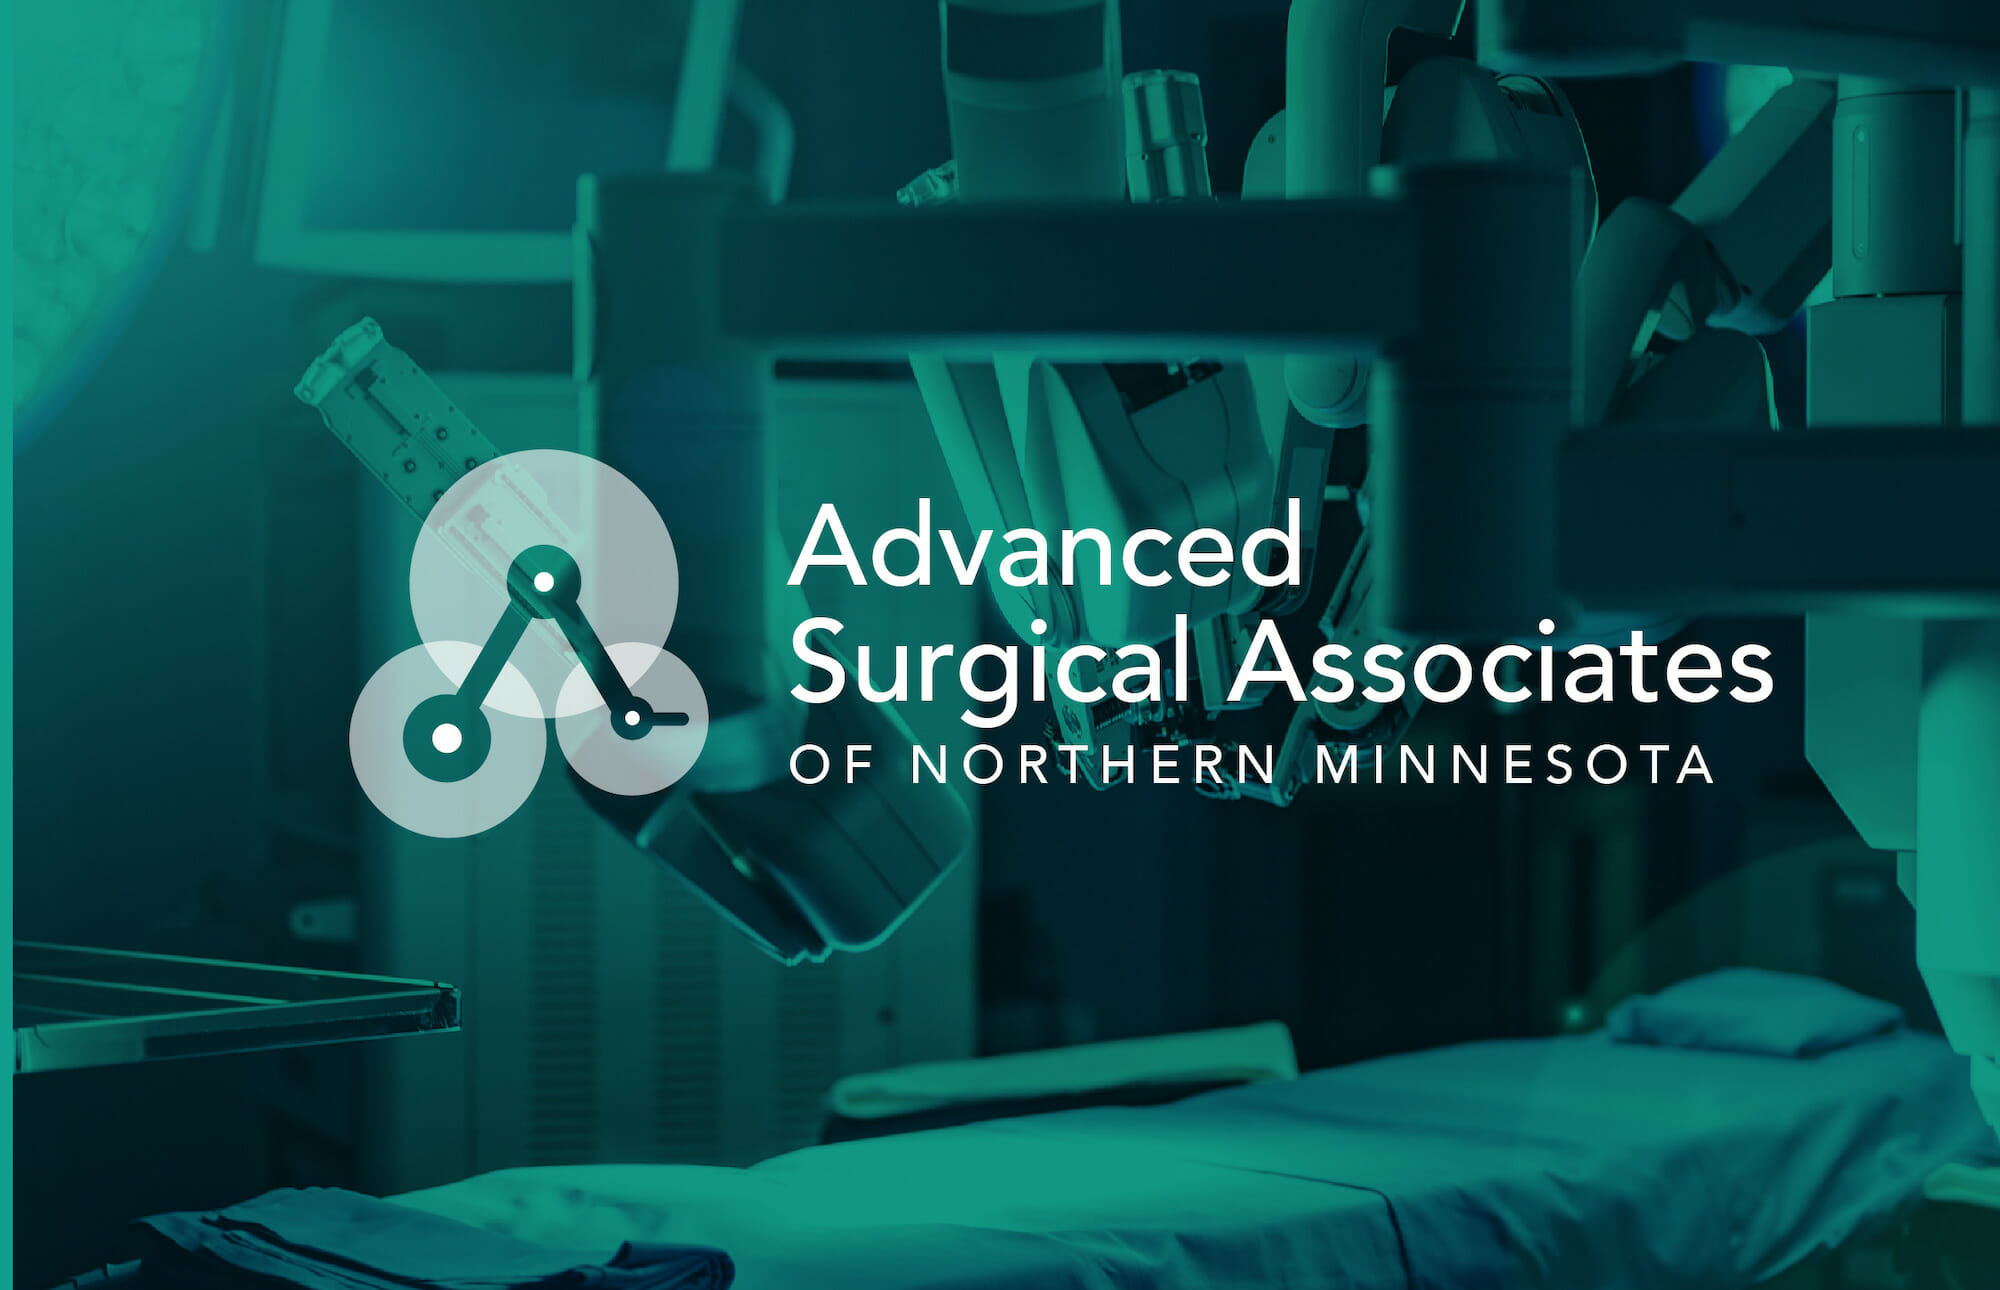 Advanced Surgical Associates of Northern Minnesota full logo, designed by Šek Design Studio